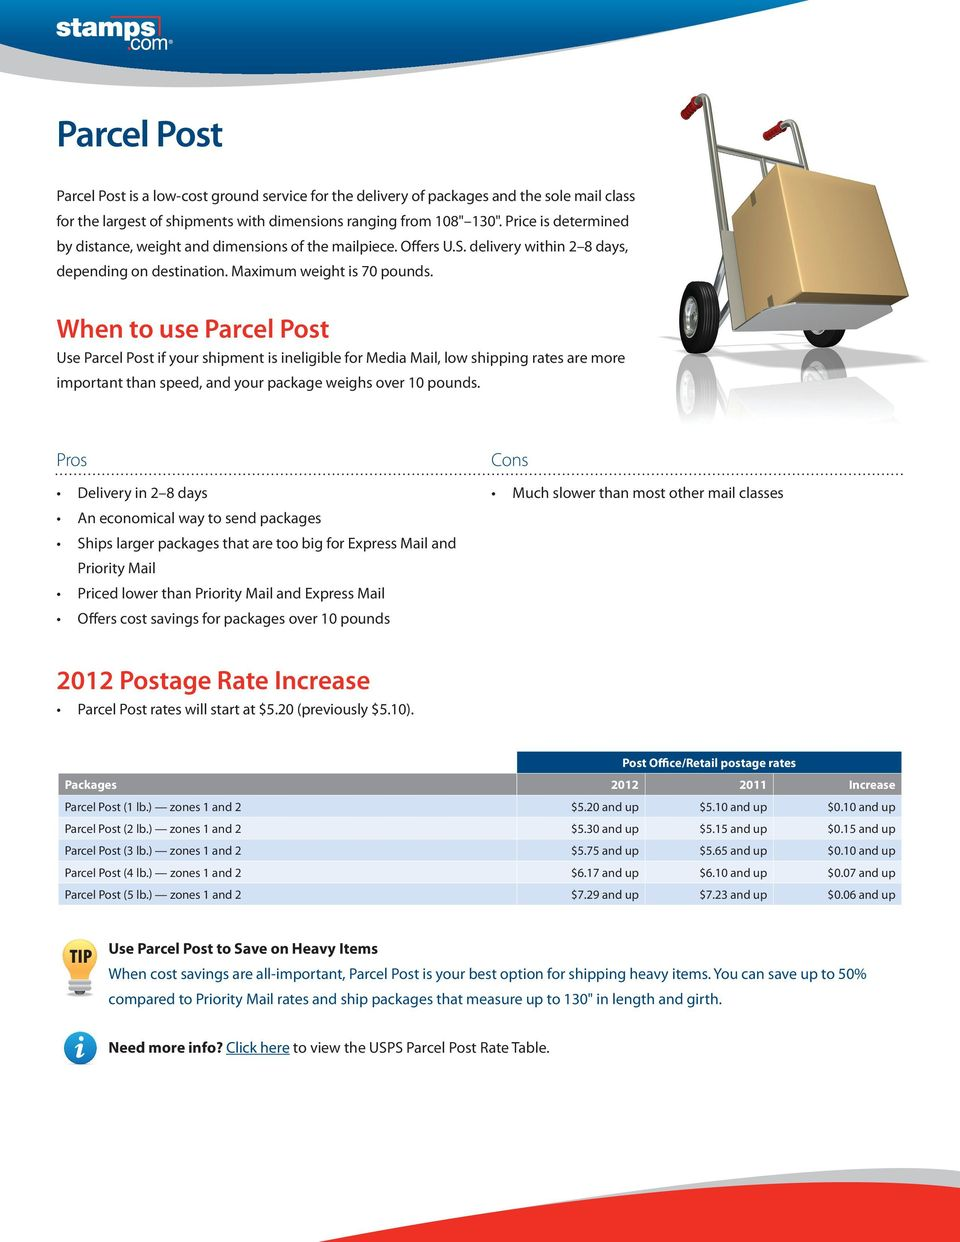 When to use Parcel Post Use Parcel Post if your shipment is ineligible for Media Mail, low shipping rates are more important than speed, and your package weighs over 10 pounds.